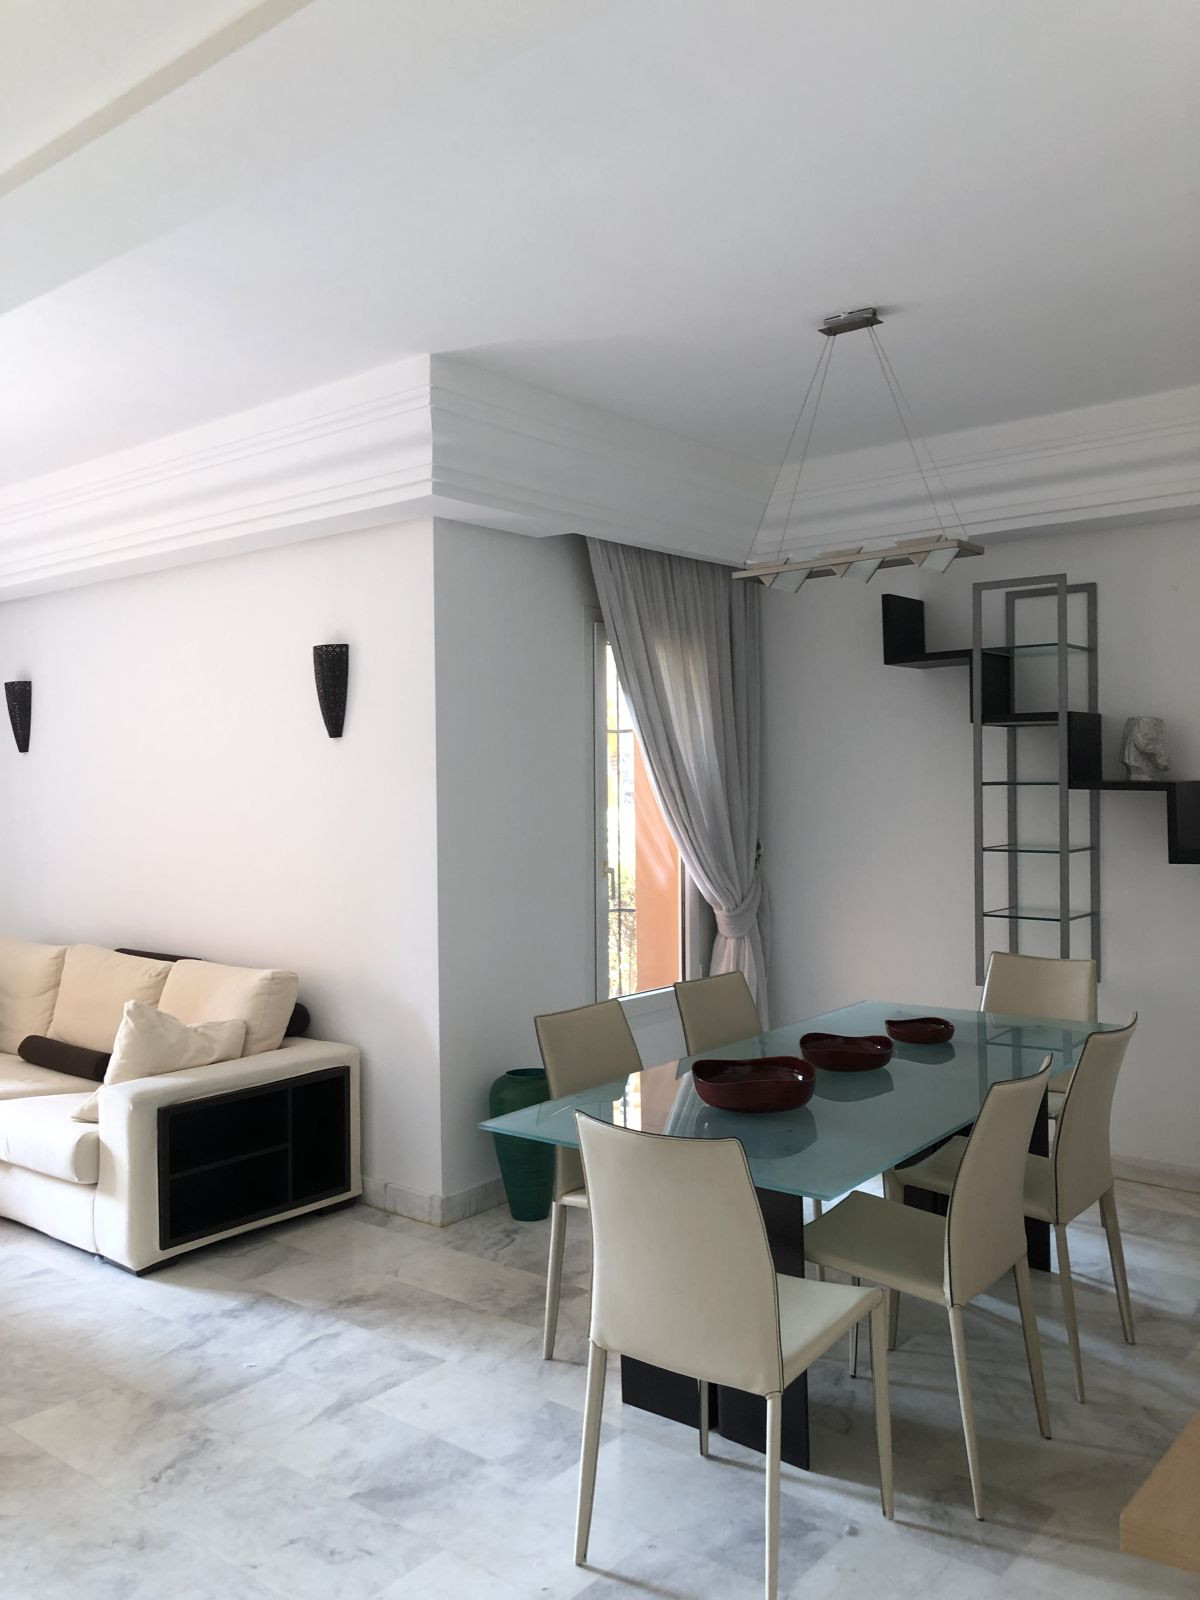 3 Bedroom Semi Detached Townhouse For Sale Marbella